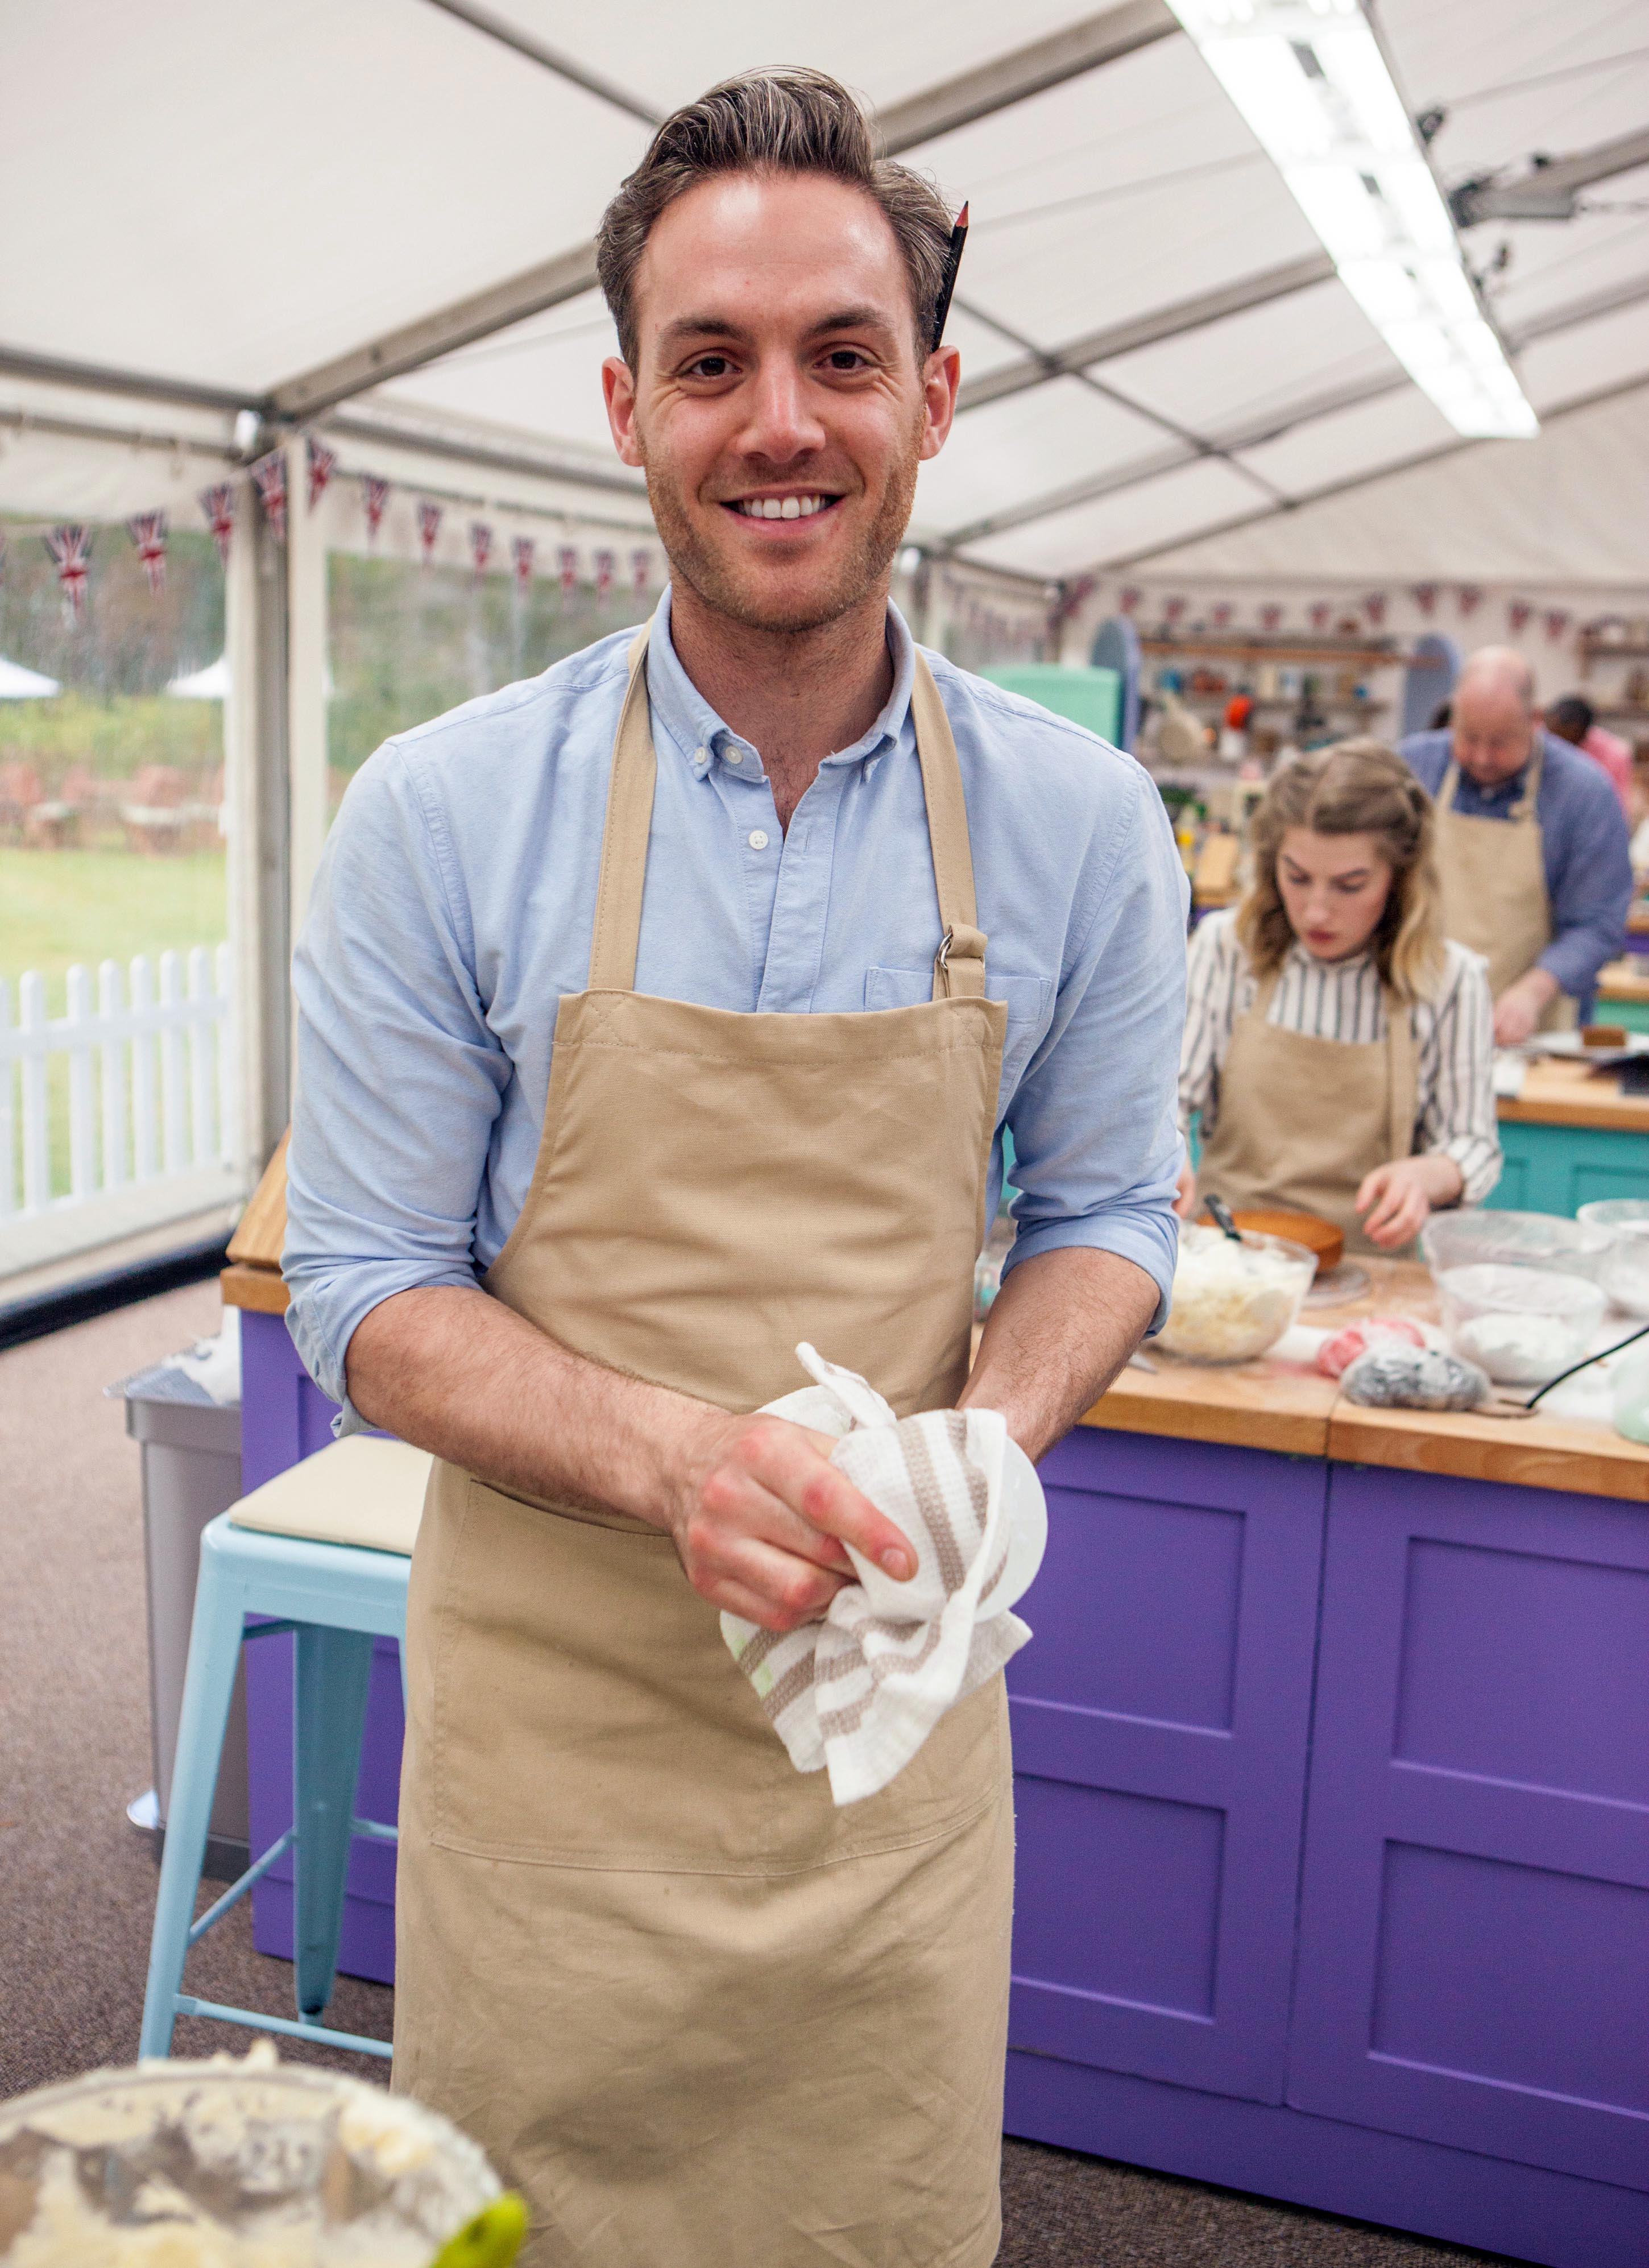 Tom on Bake Off